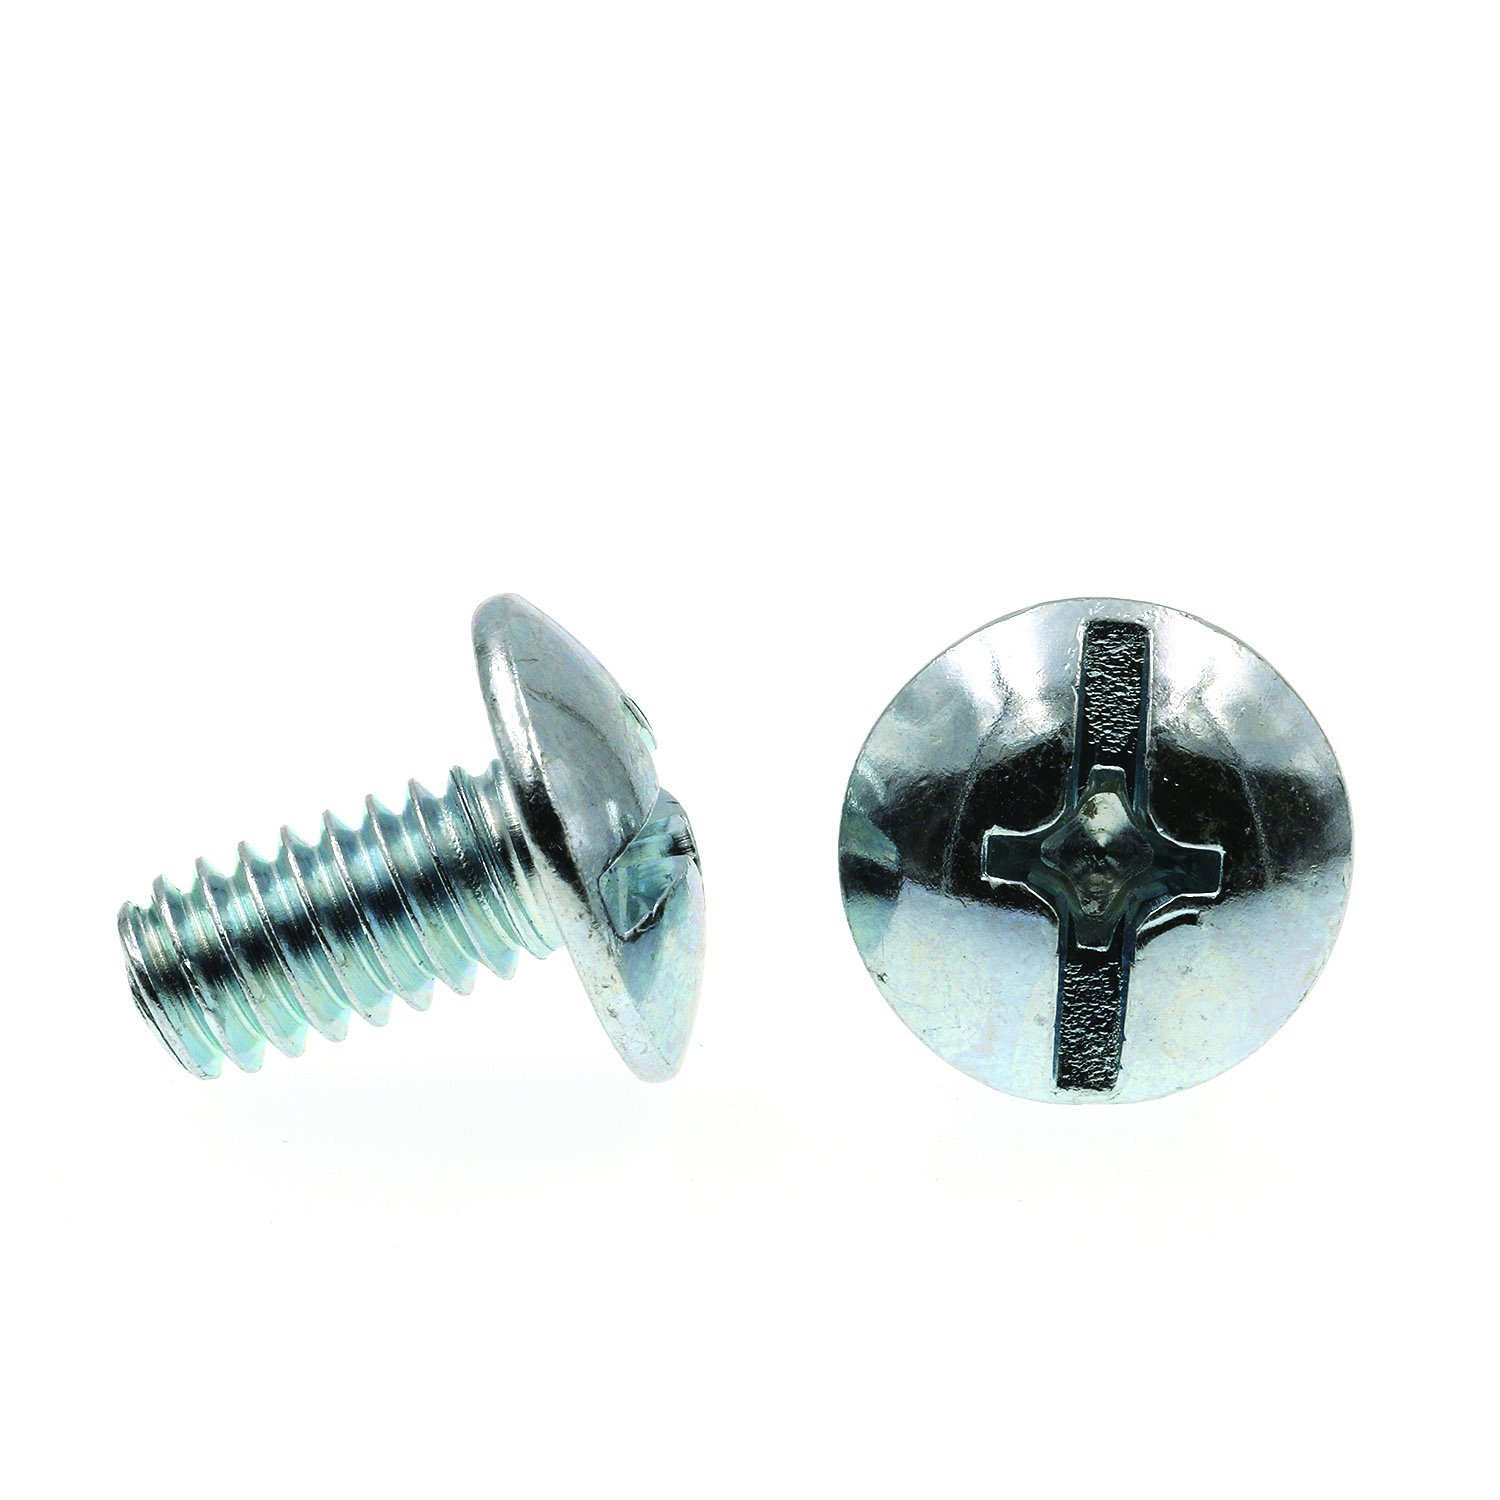 M12-60-P-BSS-UP 100 Pcs M1.2 X 6mm Plastic Thread Forming Screw Black Stainless Steel Undersized Pan Head Phillips Drive